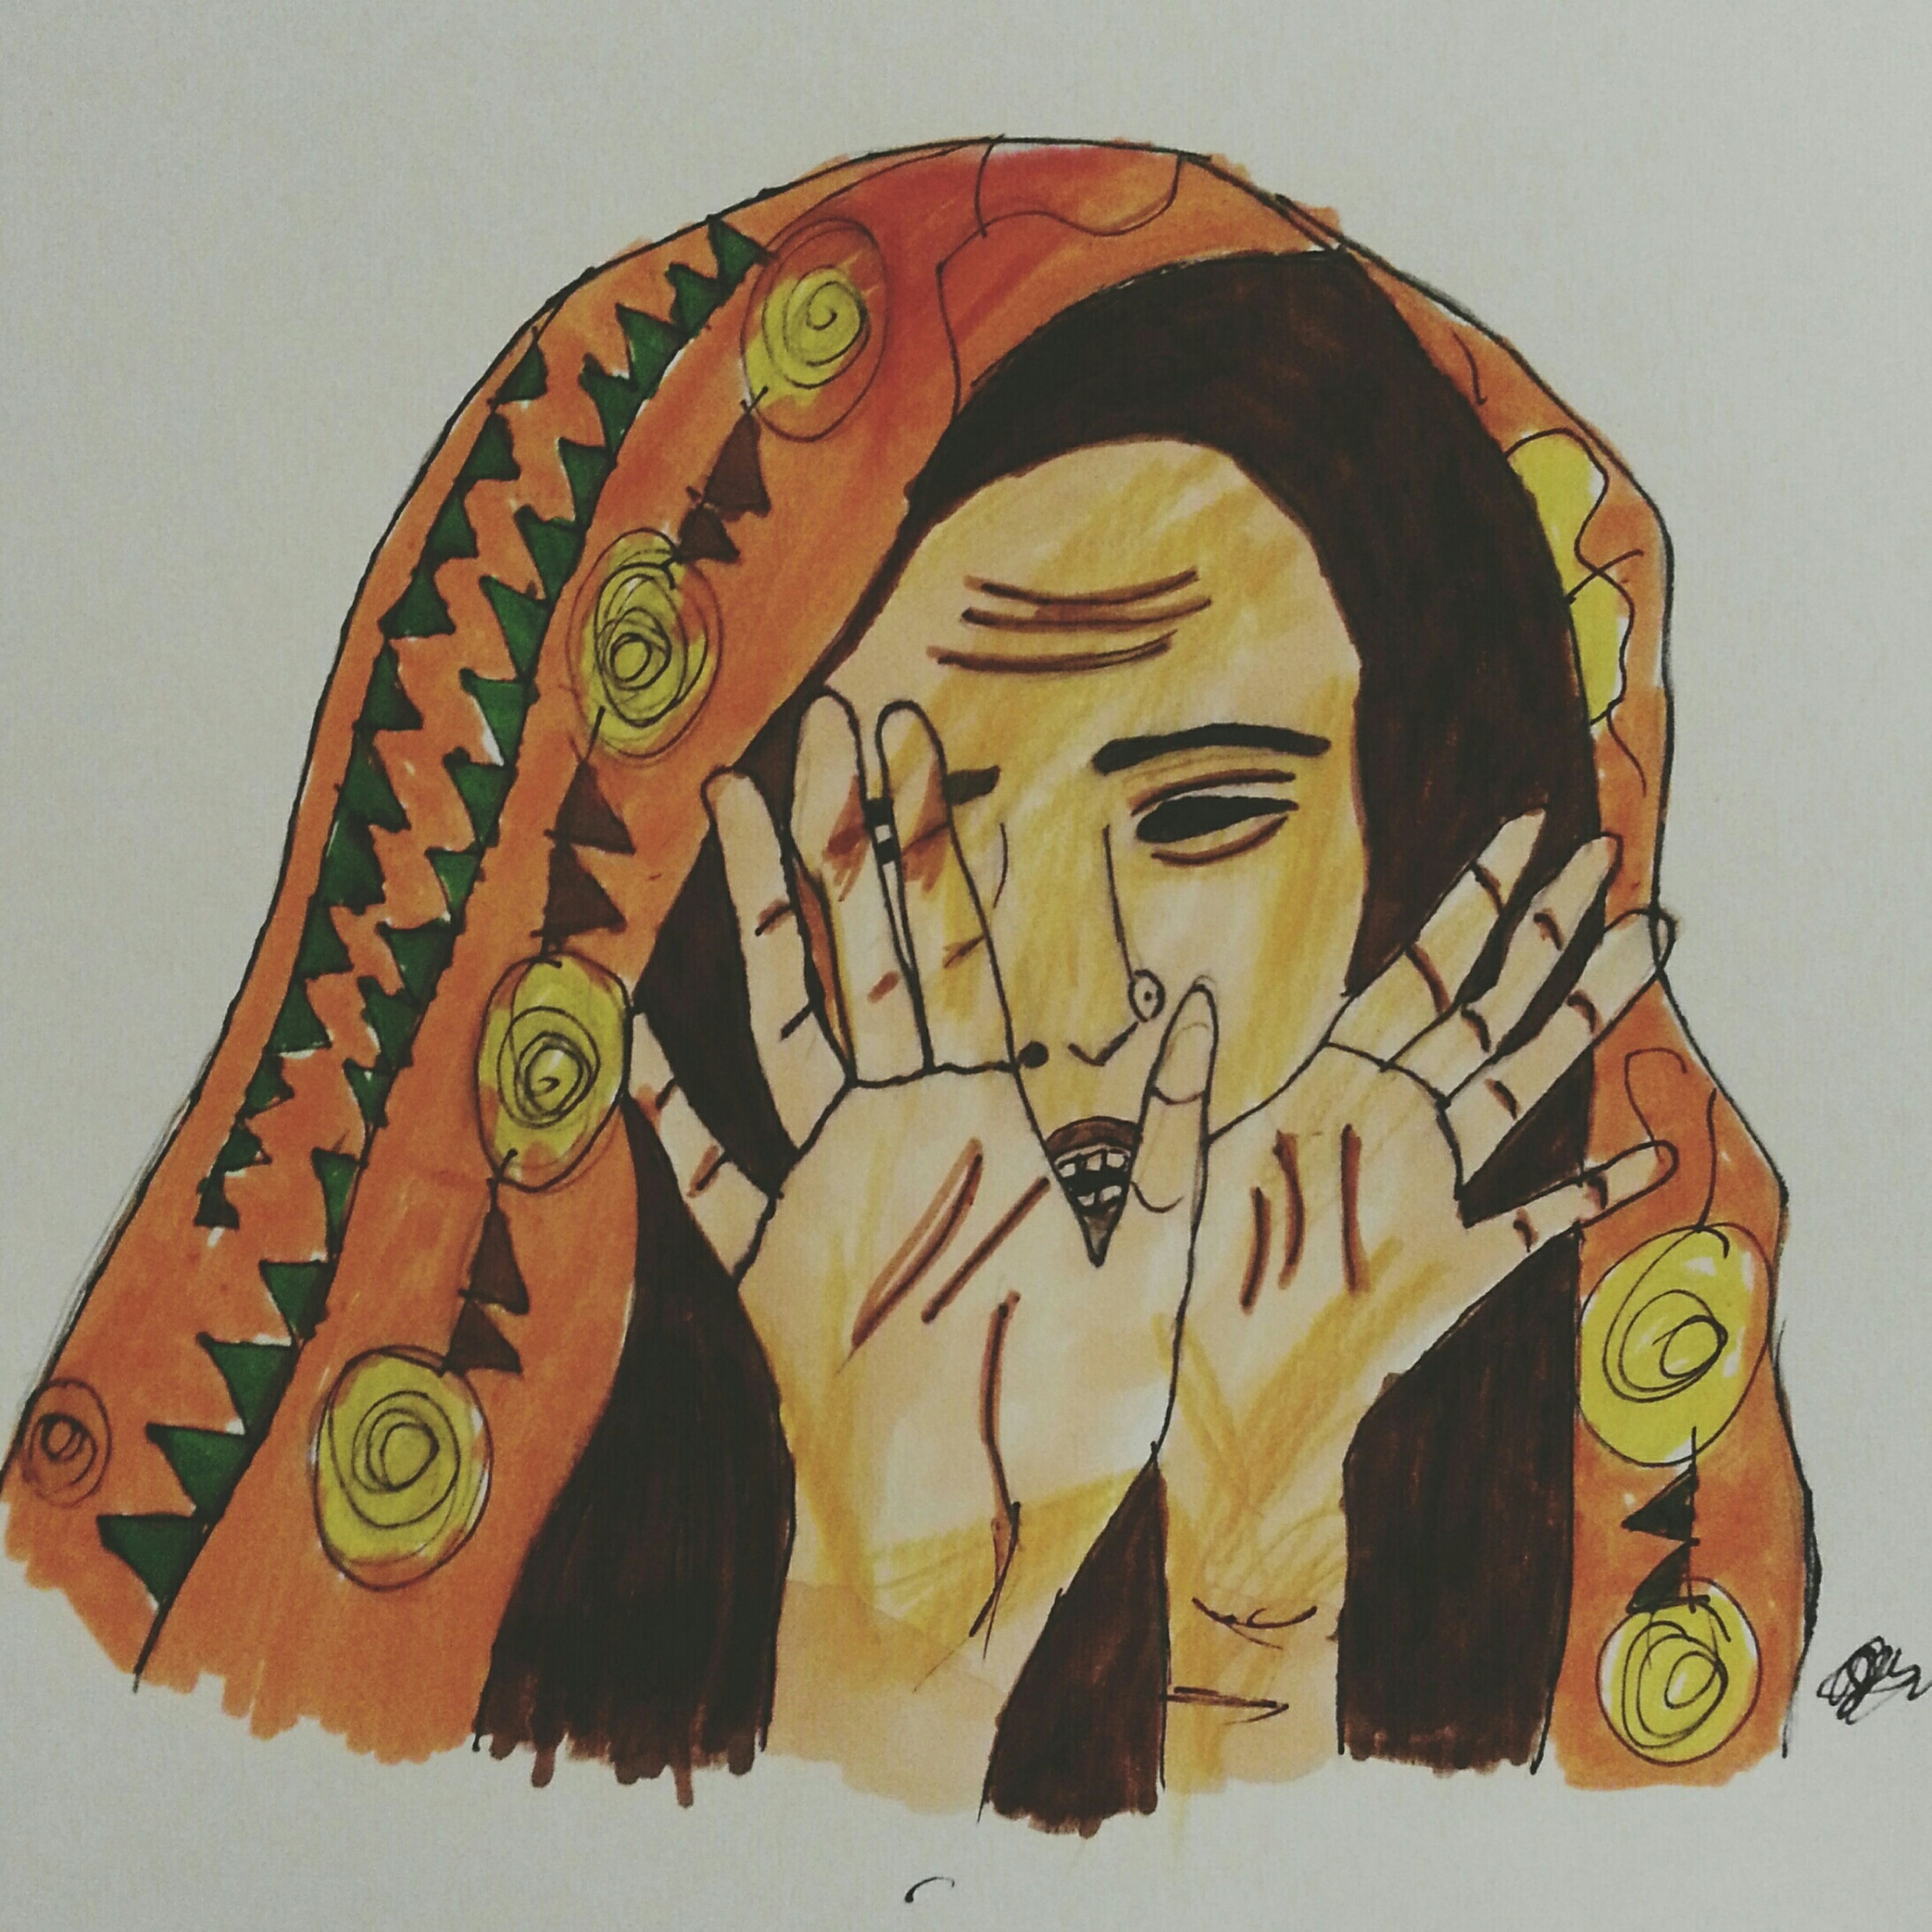 I speak for those women who do not speak, for those who do not have a voice because they were so terrified, because we are taught to respect fear more than ourselves. We've been taught that silence would save us, but it wont Women Womenrights Respectwomen Spreadlove Bekindtowomen